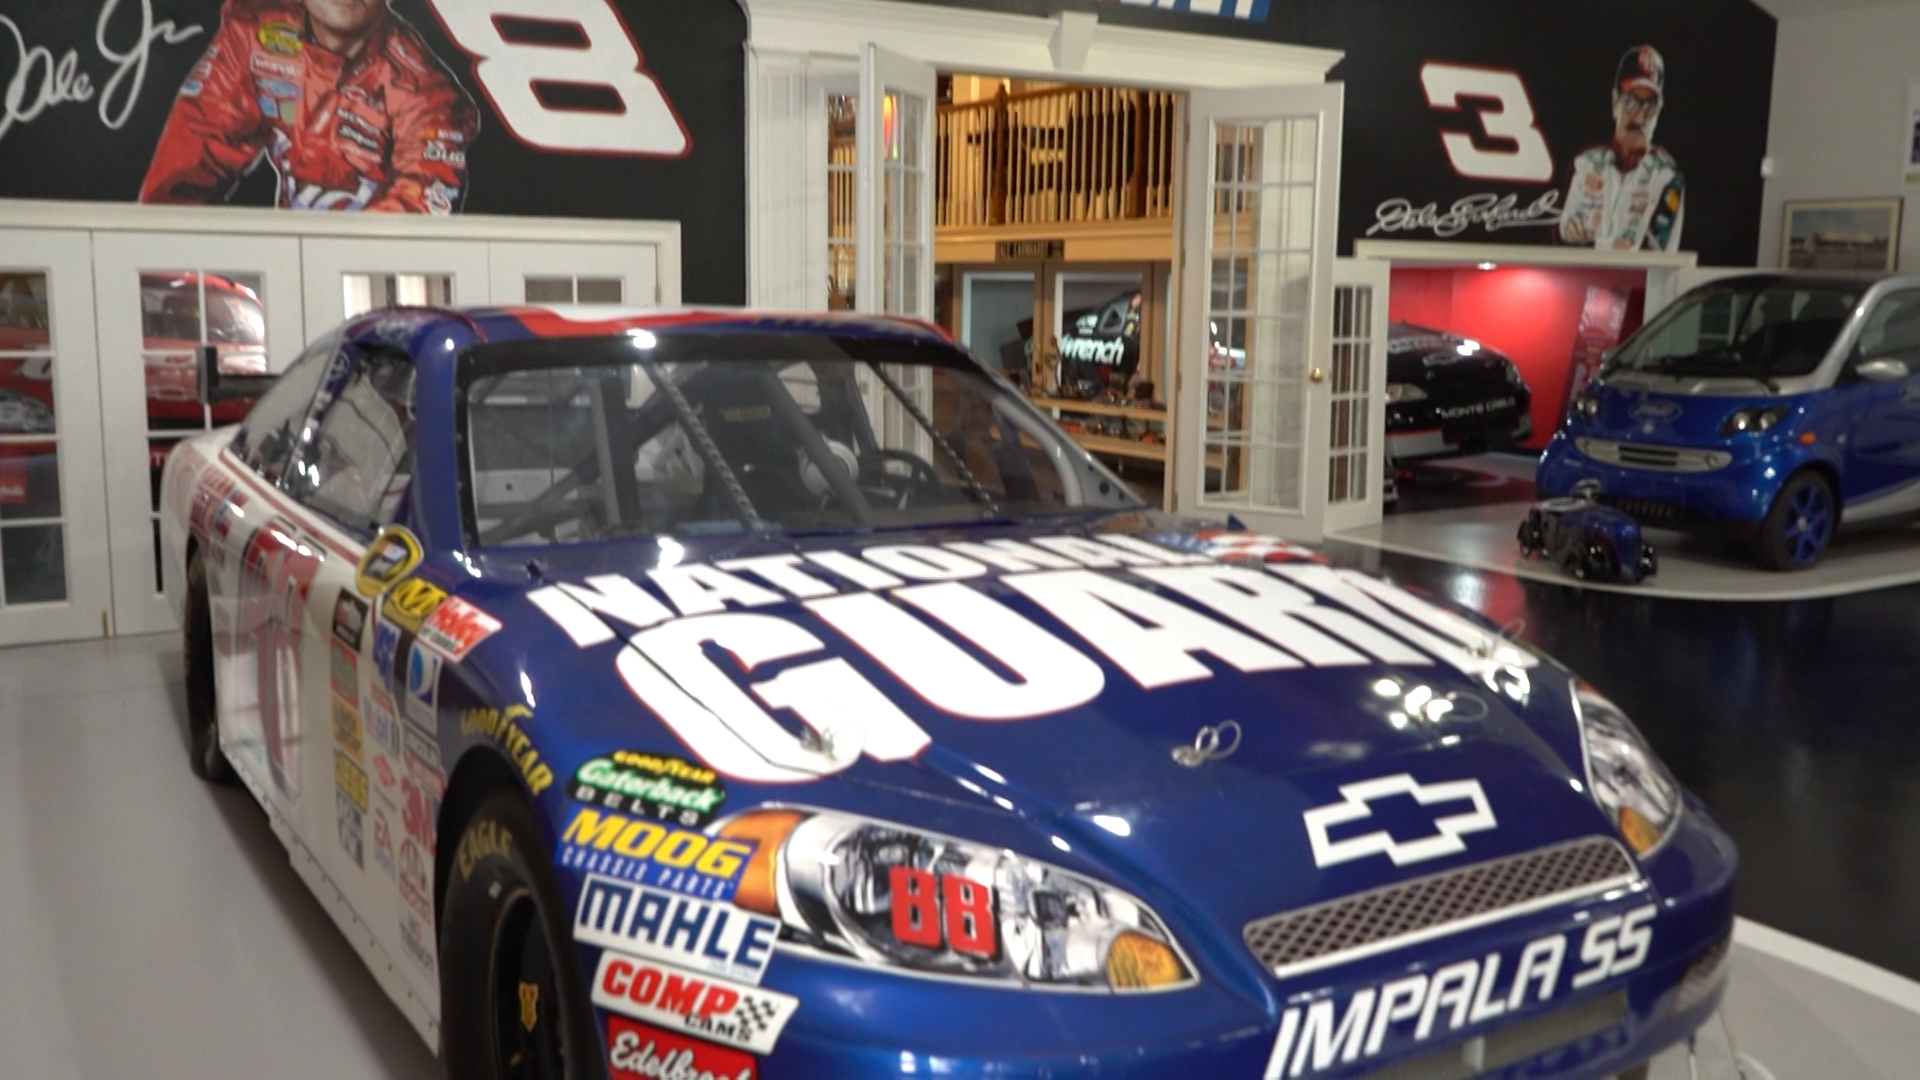 NASCAR superfan would be at home in this Florida mansion – WESH 2 Orlando